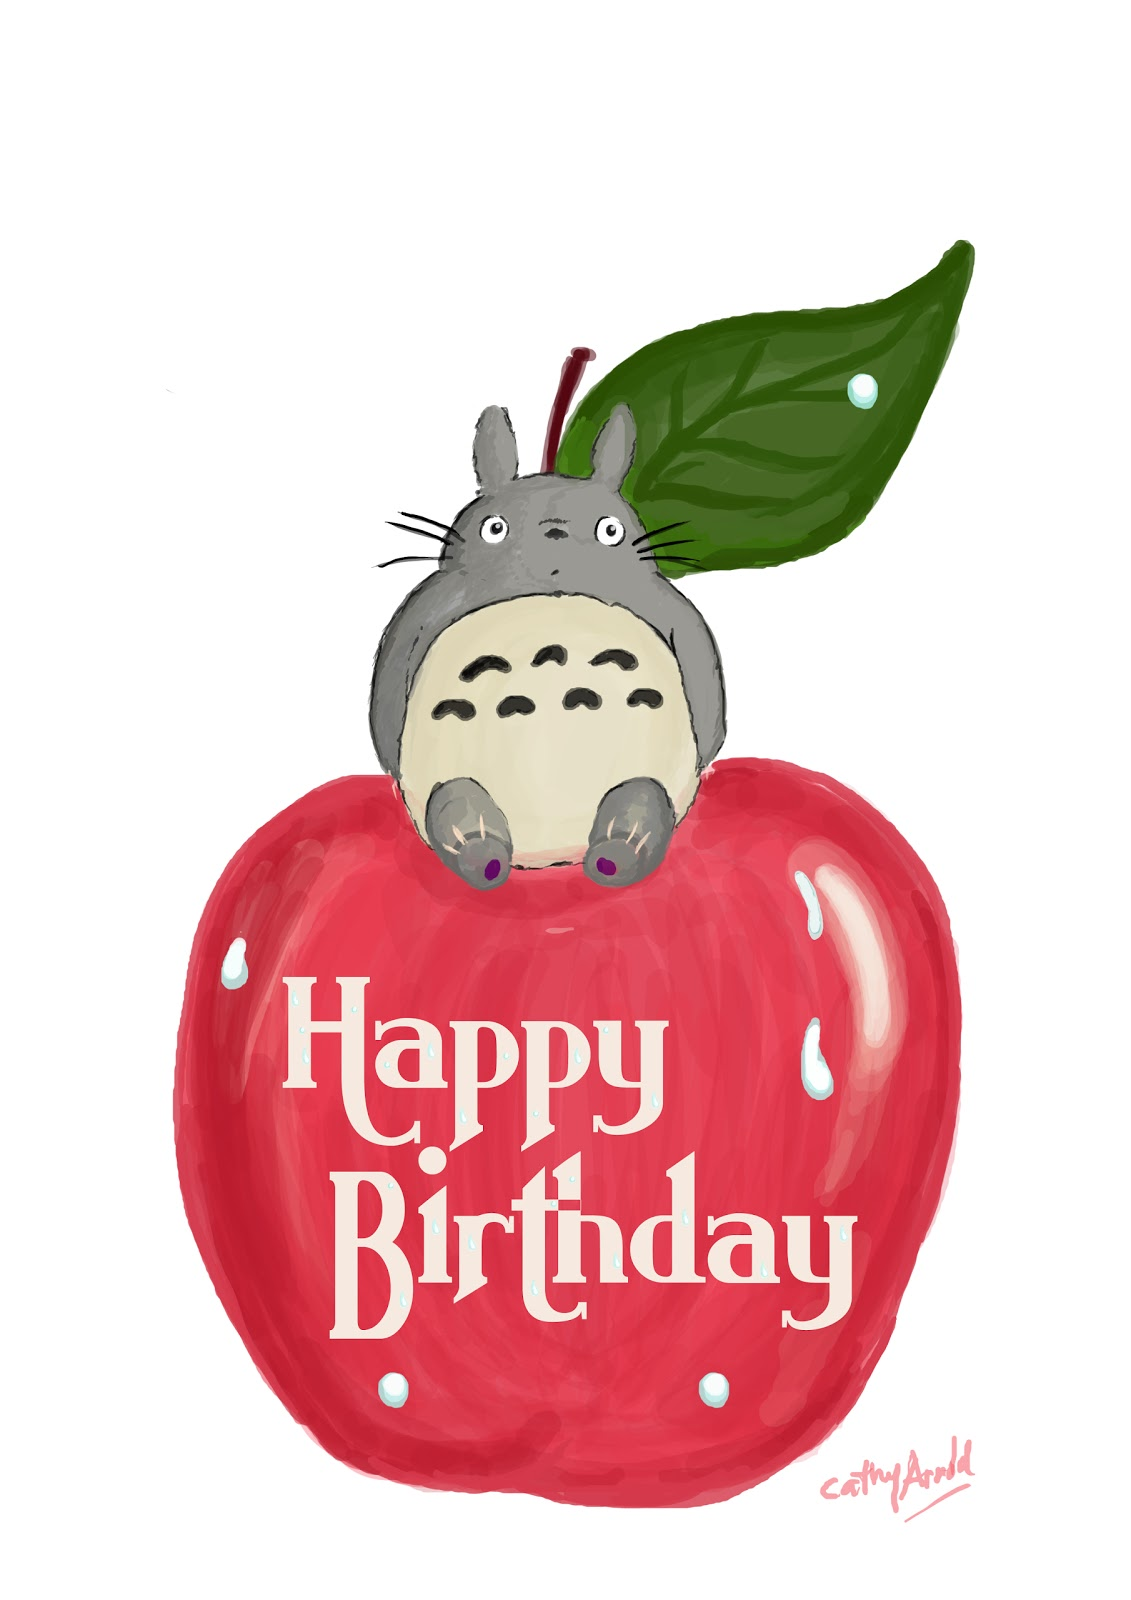 The Lost Weekend totoro in apple – Totoro Birthday Card